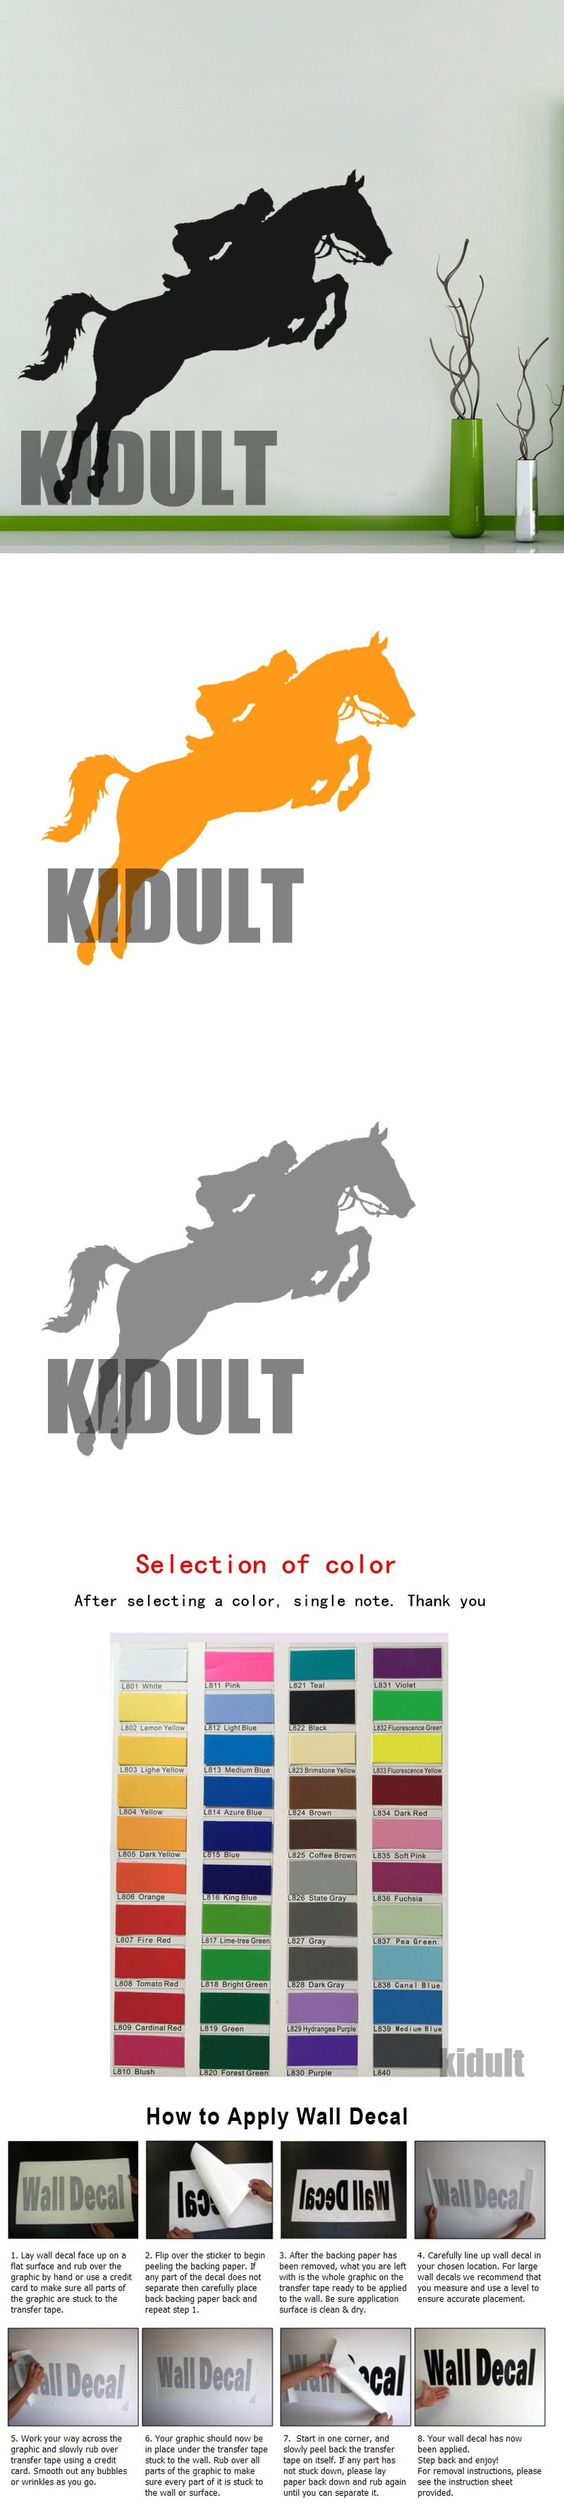 Animal wall decals kids personalized pony western wall stickers animal wall decals kids personalized pony western wall stickers home interior wall decoration multicolor and amipublicfo Images